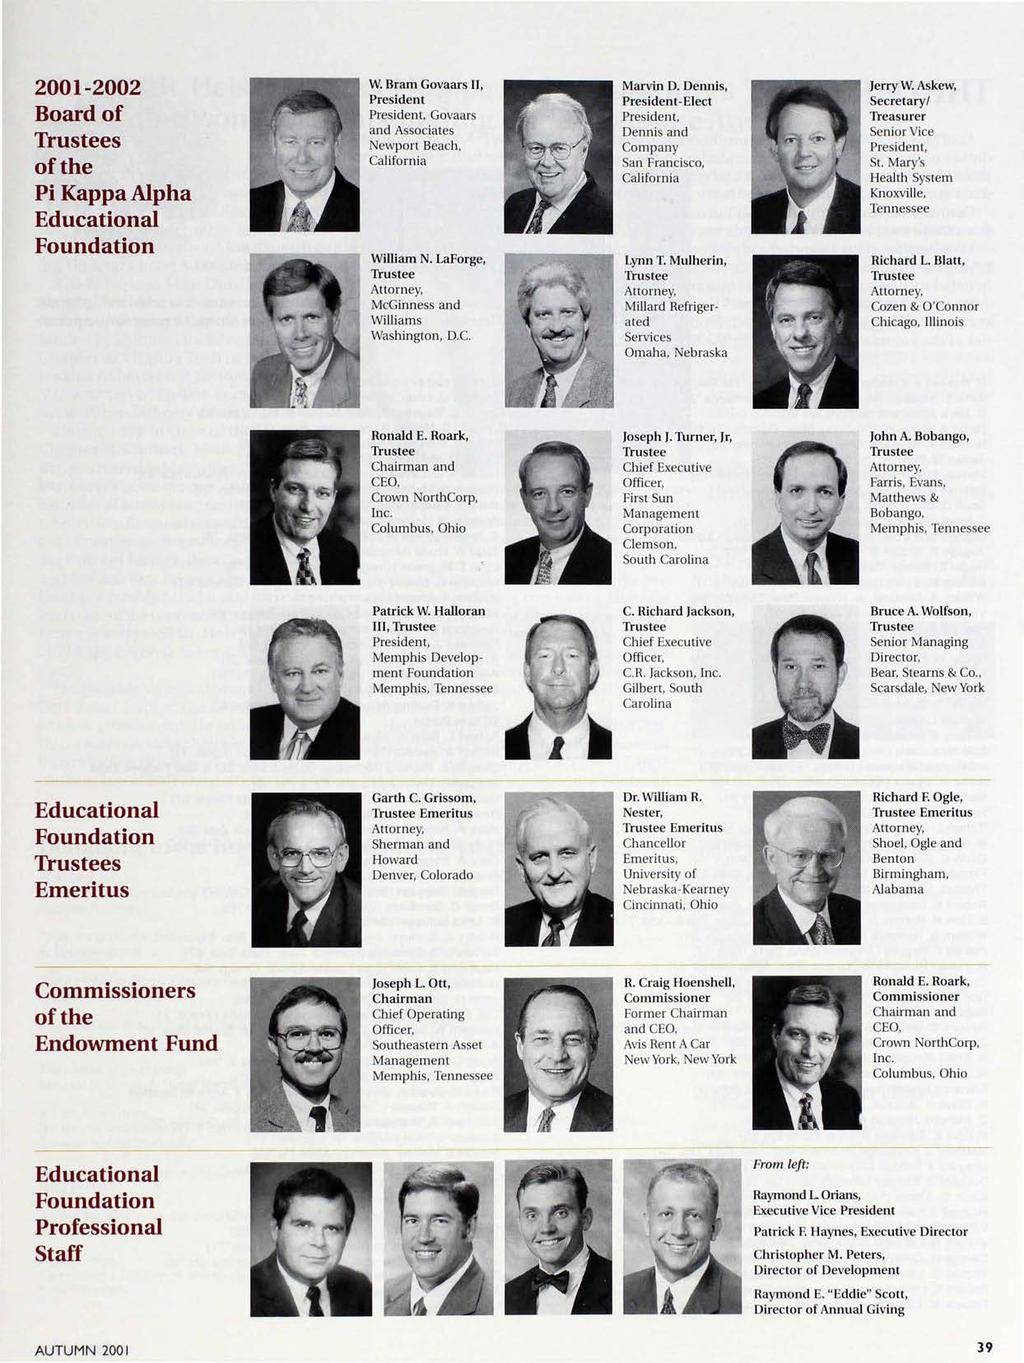 2001-2002 Board of Trustees of the Pi Kappa Alpha Educational Foundation W. Bram Govaars II, President President, Govaars and Associates Newport Beach, California William N.